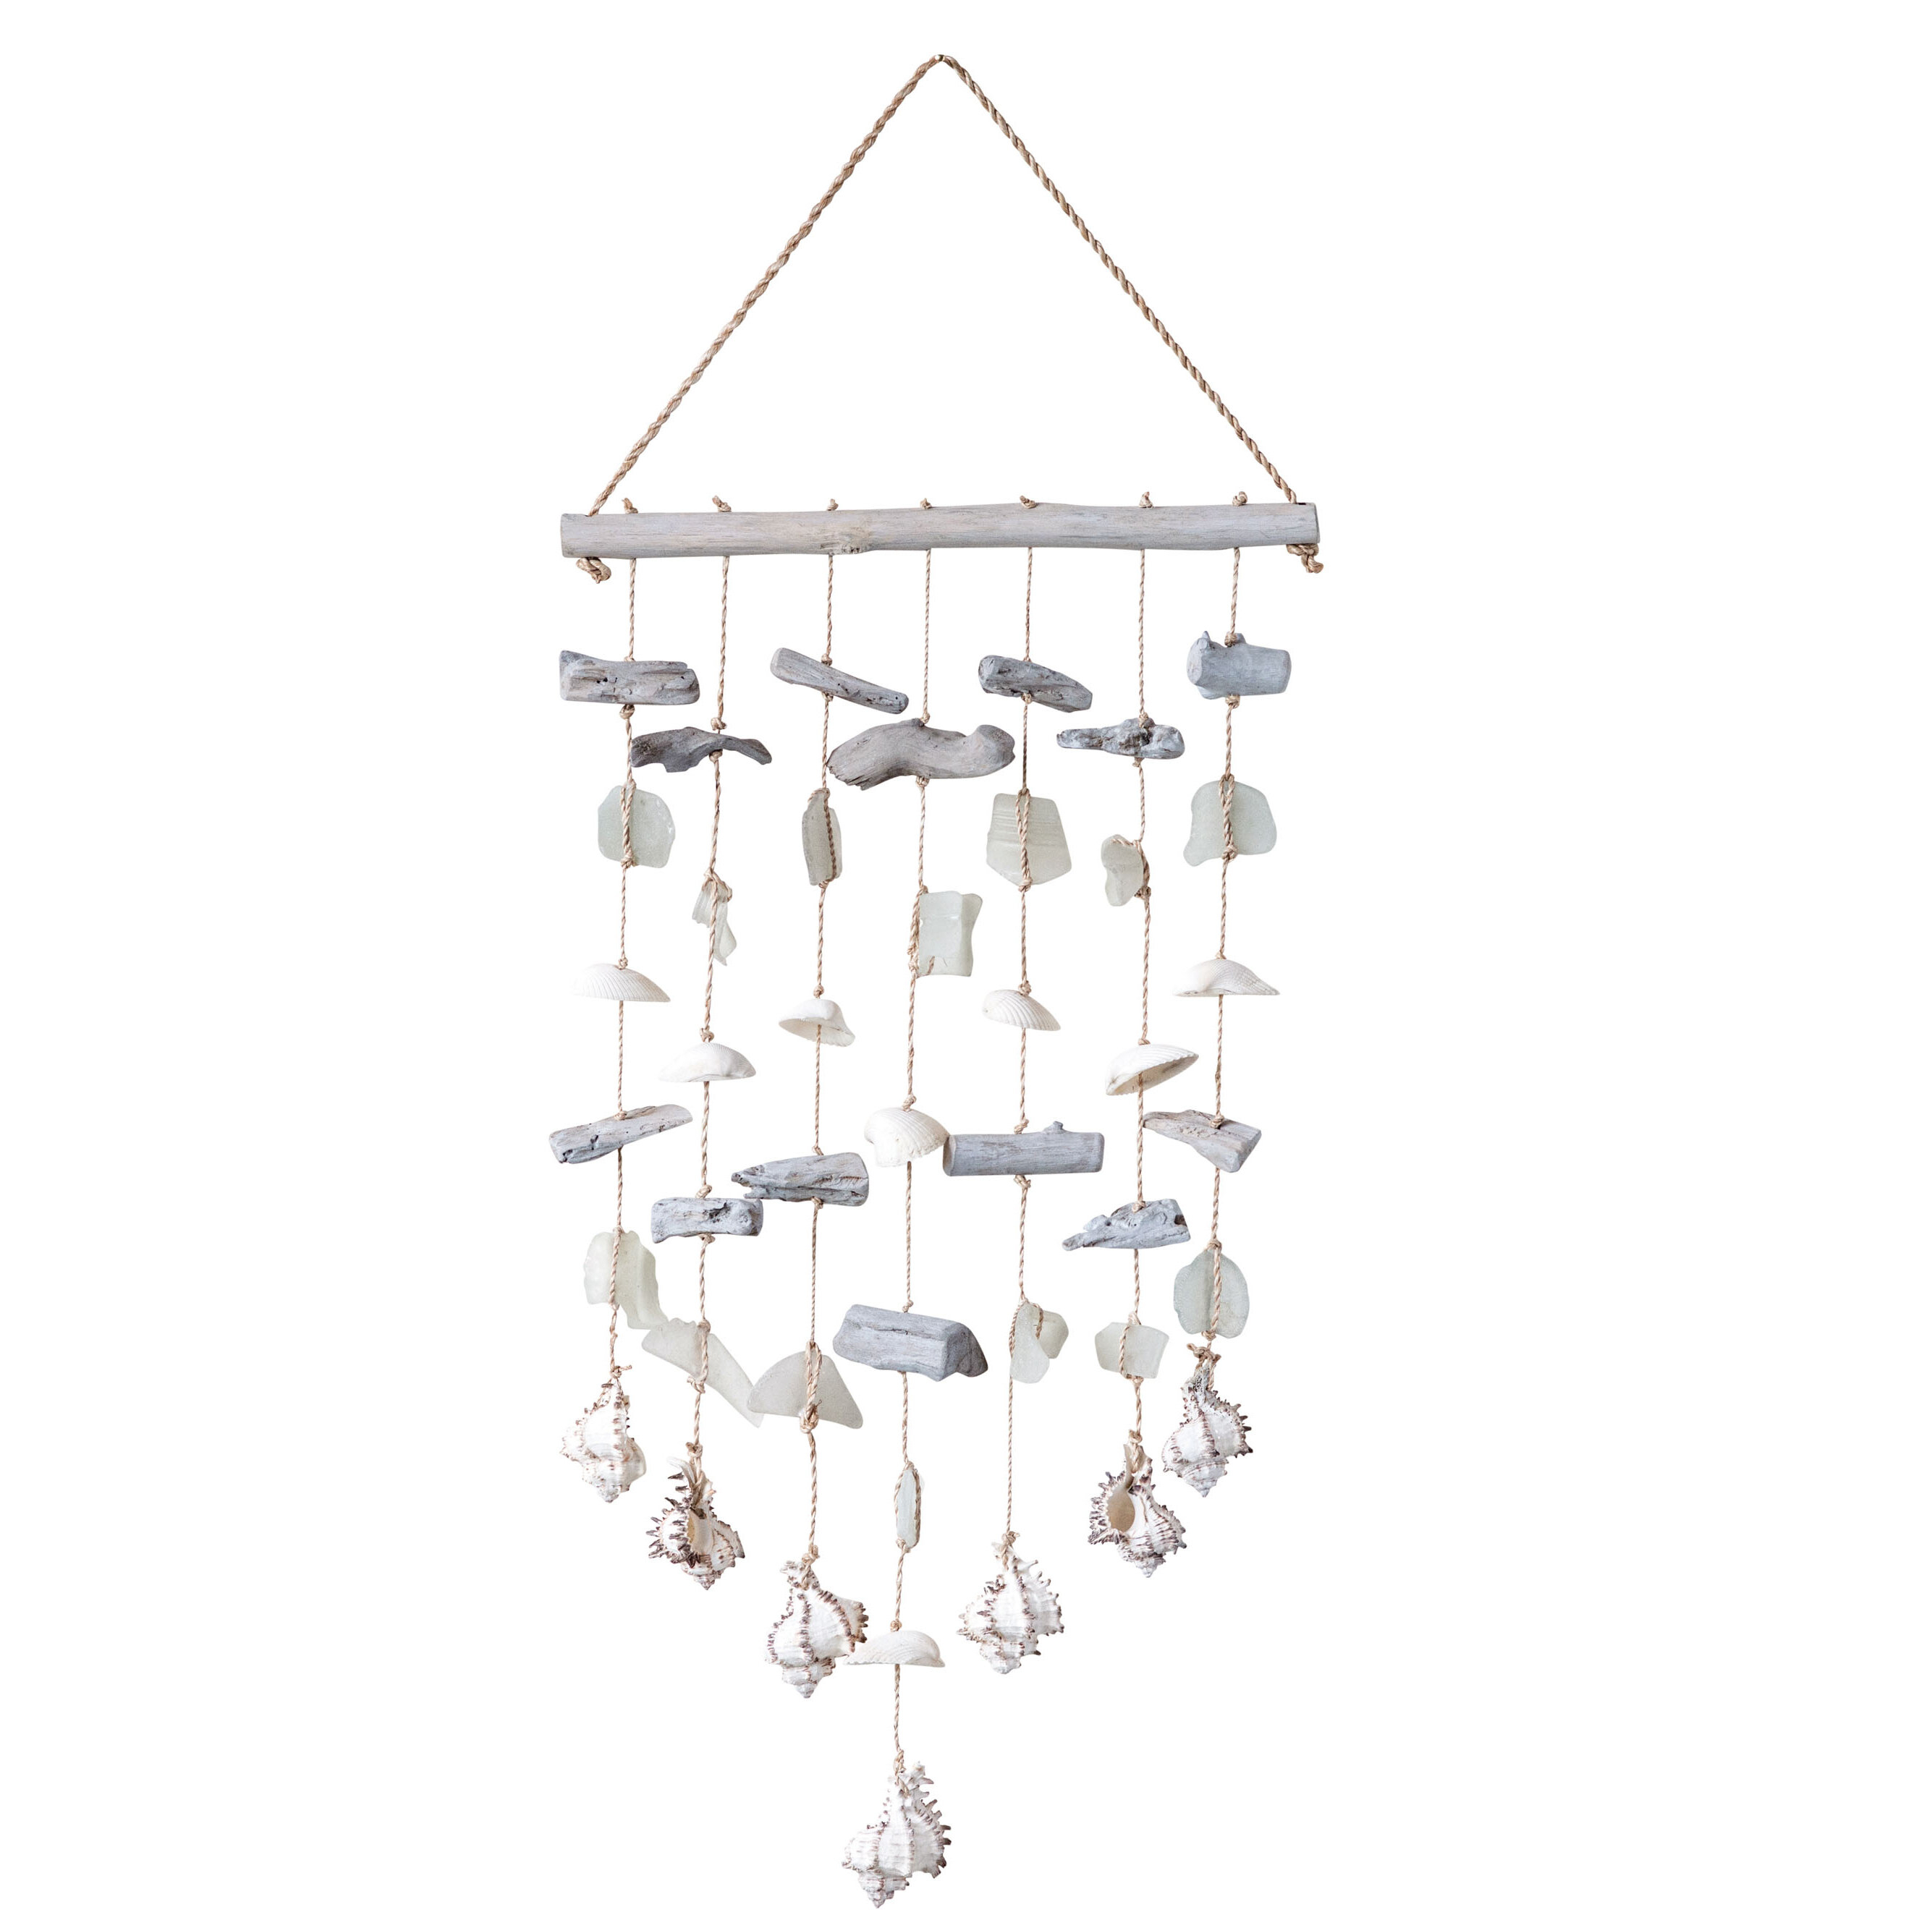 Driftwood With Shells & Sea Glass Beads Wall Décor within Mariposa 9 Piece Wall Decor (Image 9 of 30)